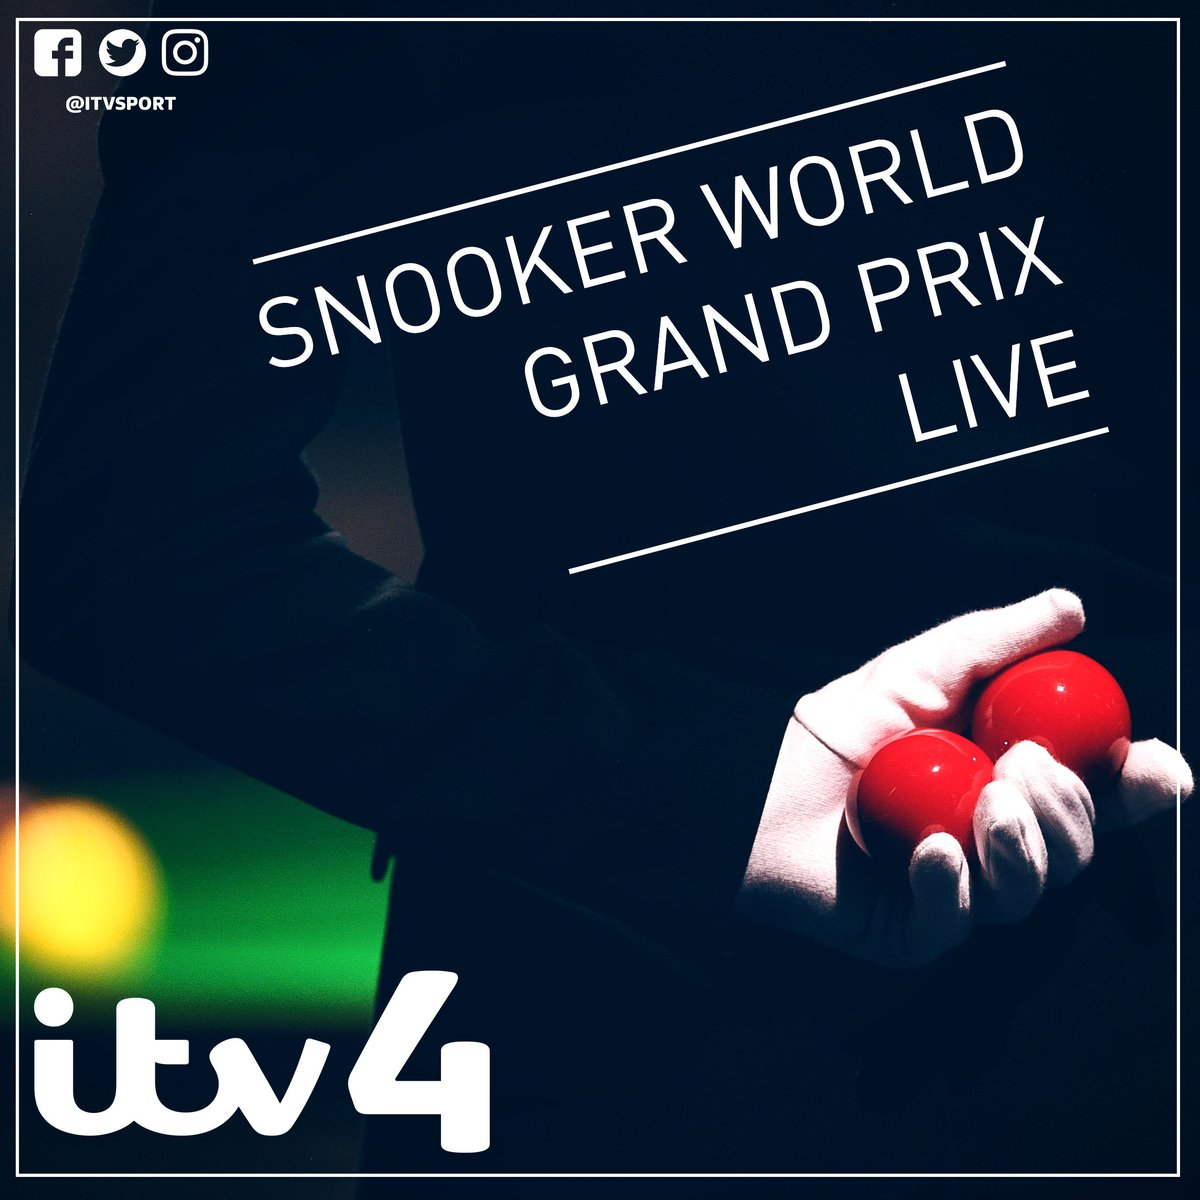 We are LIVE on @ITV4 for the World Grand Prix Snooker FINAL! Tune in now with @JillADouglas, @alan_mcmanus, @SHendry775 and @fouldsy147...